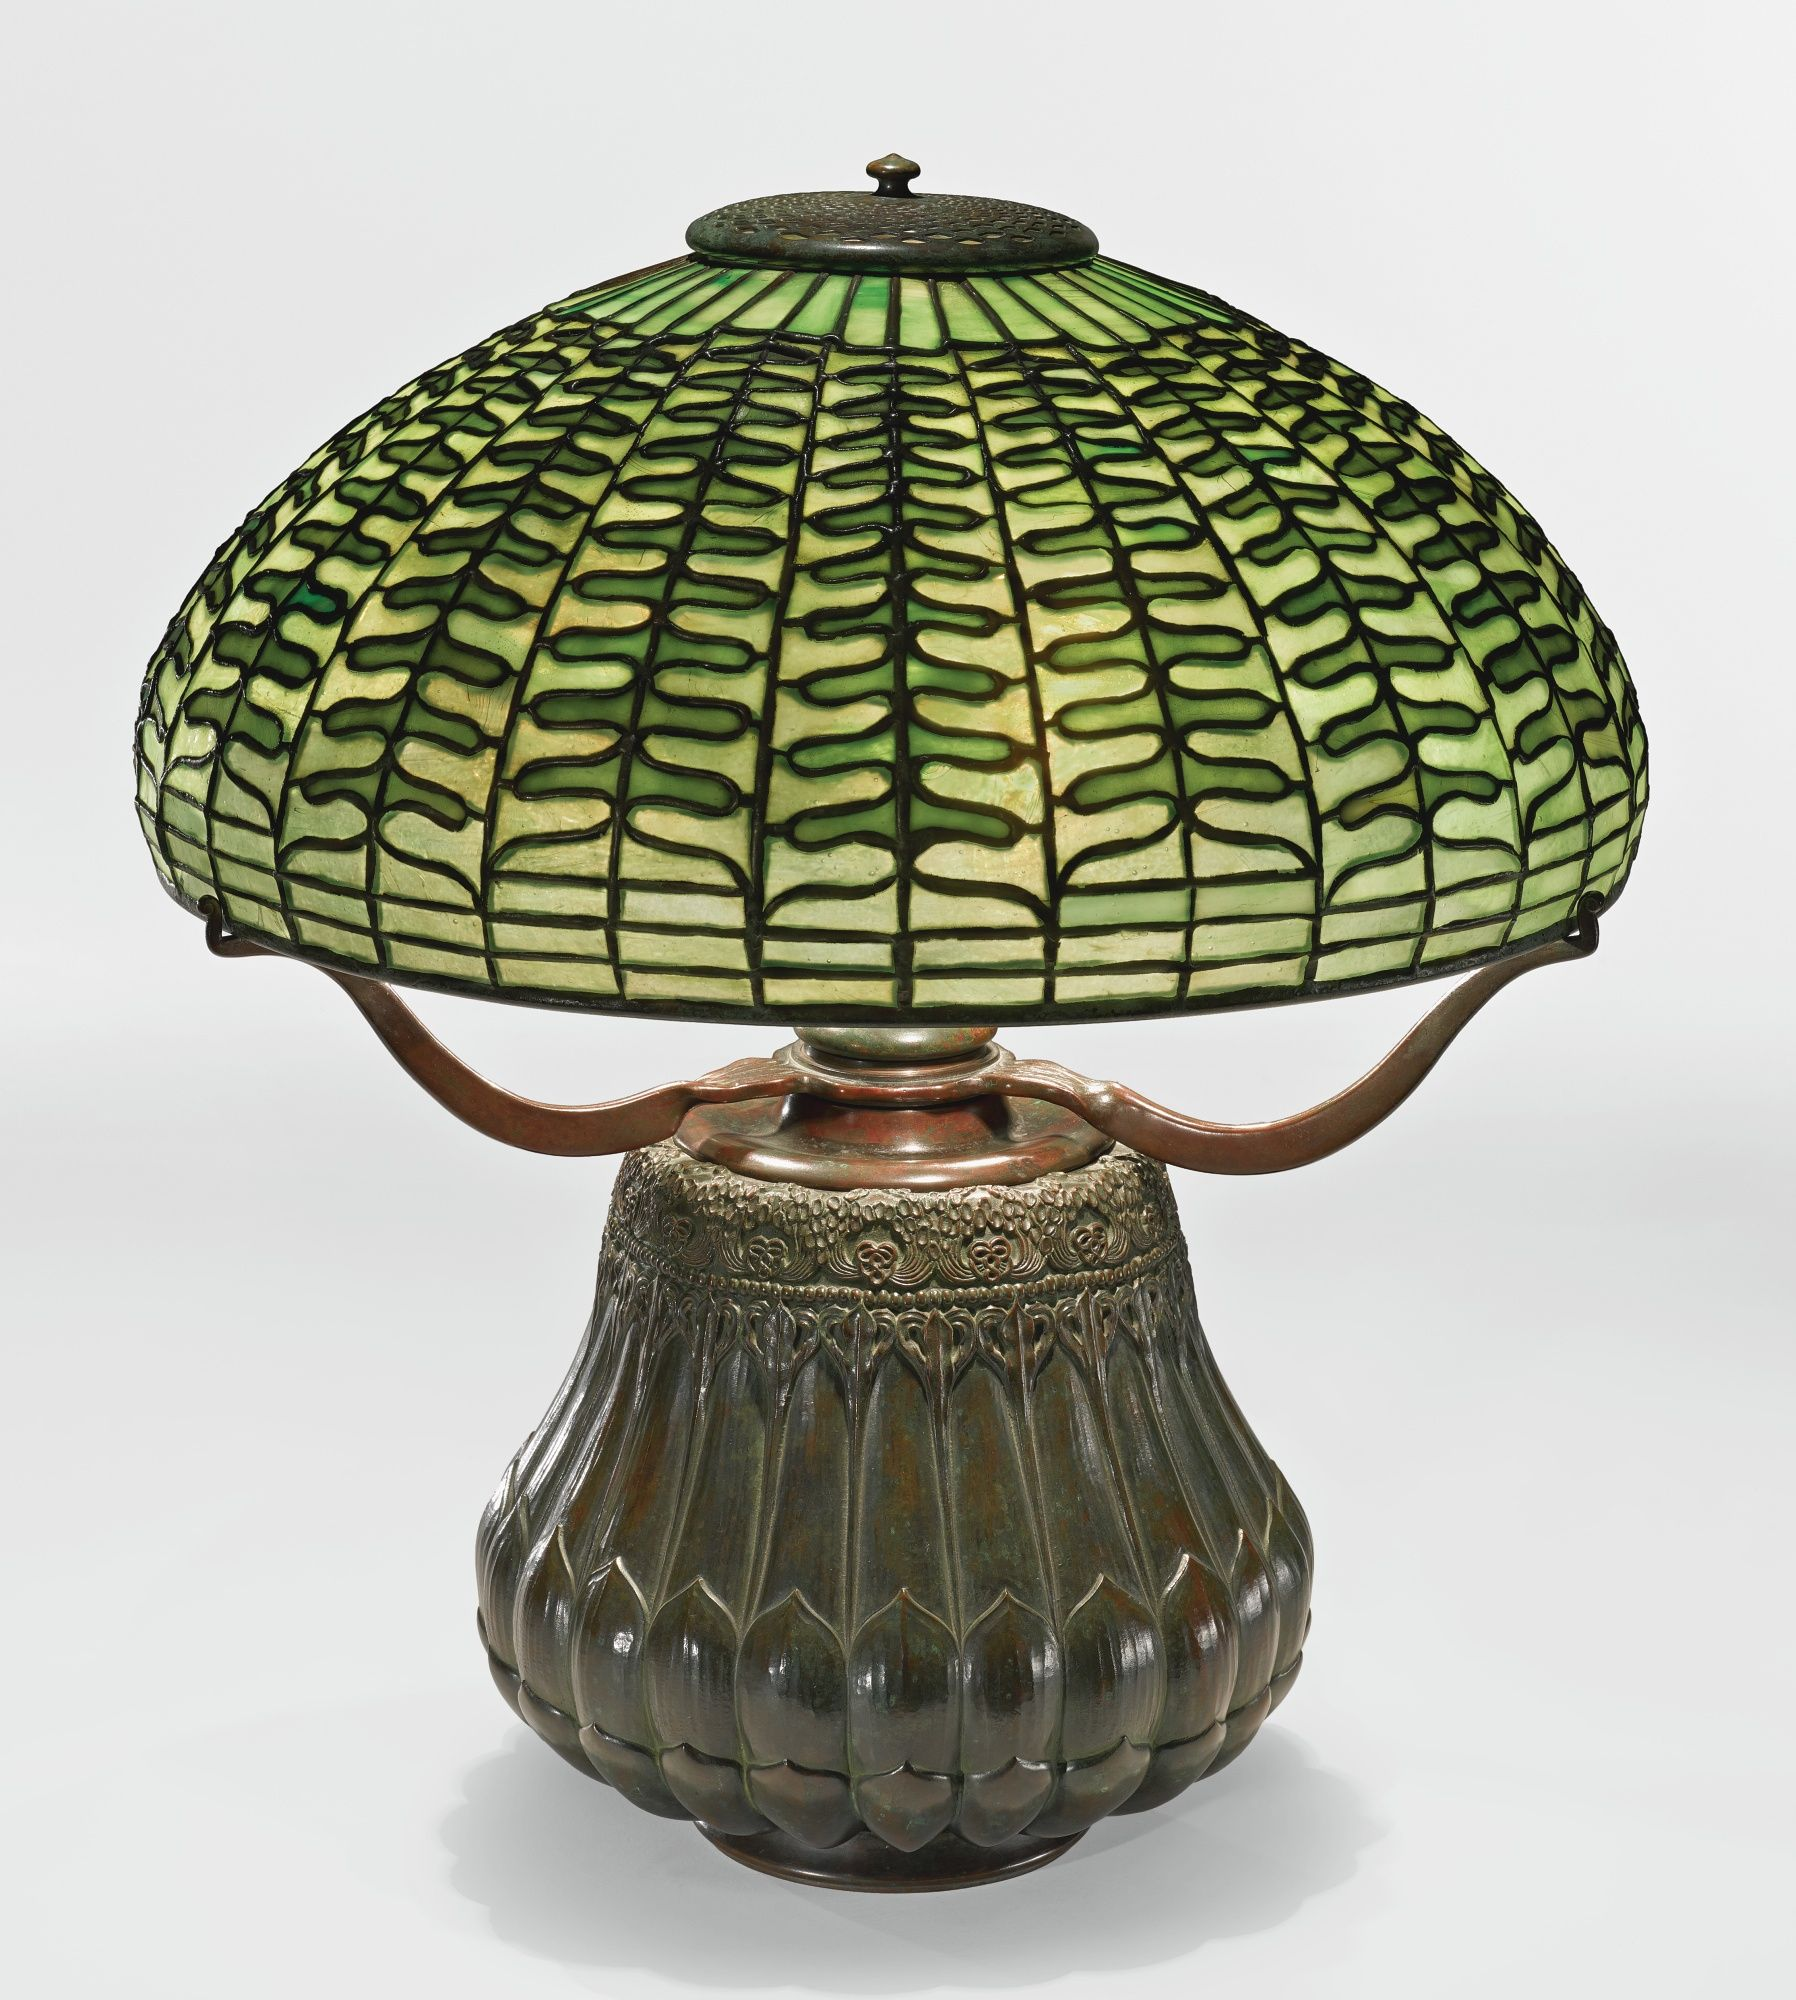 """Tiffany Studios -  A RARE """"FERN"""" TABLE LAMP with a """"Night Blooming Cereus"""" base, leaded glass and patinated bronze, circa 1900-1902"""